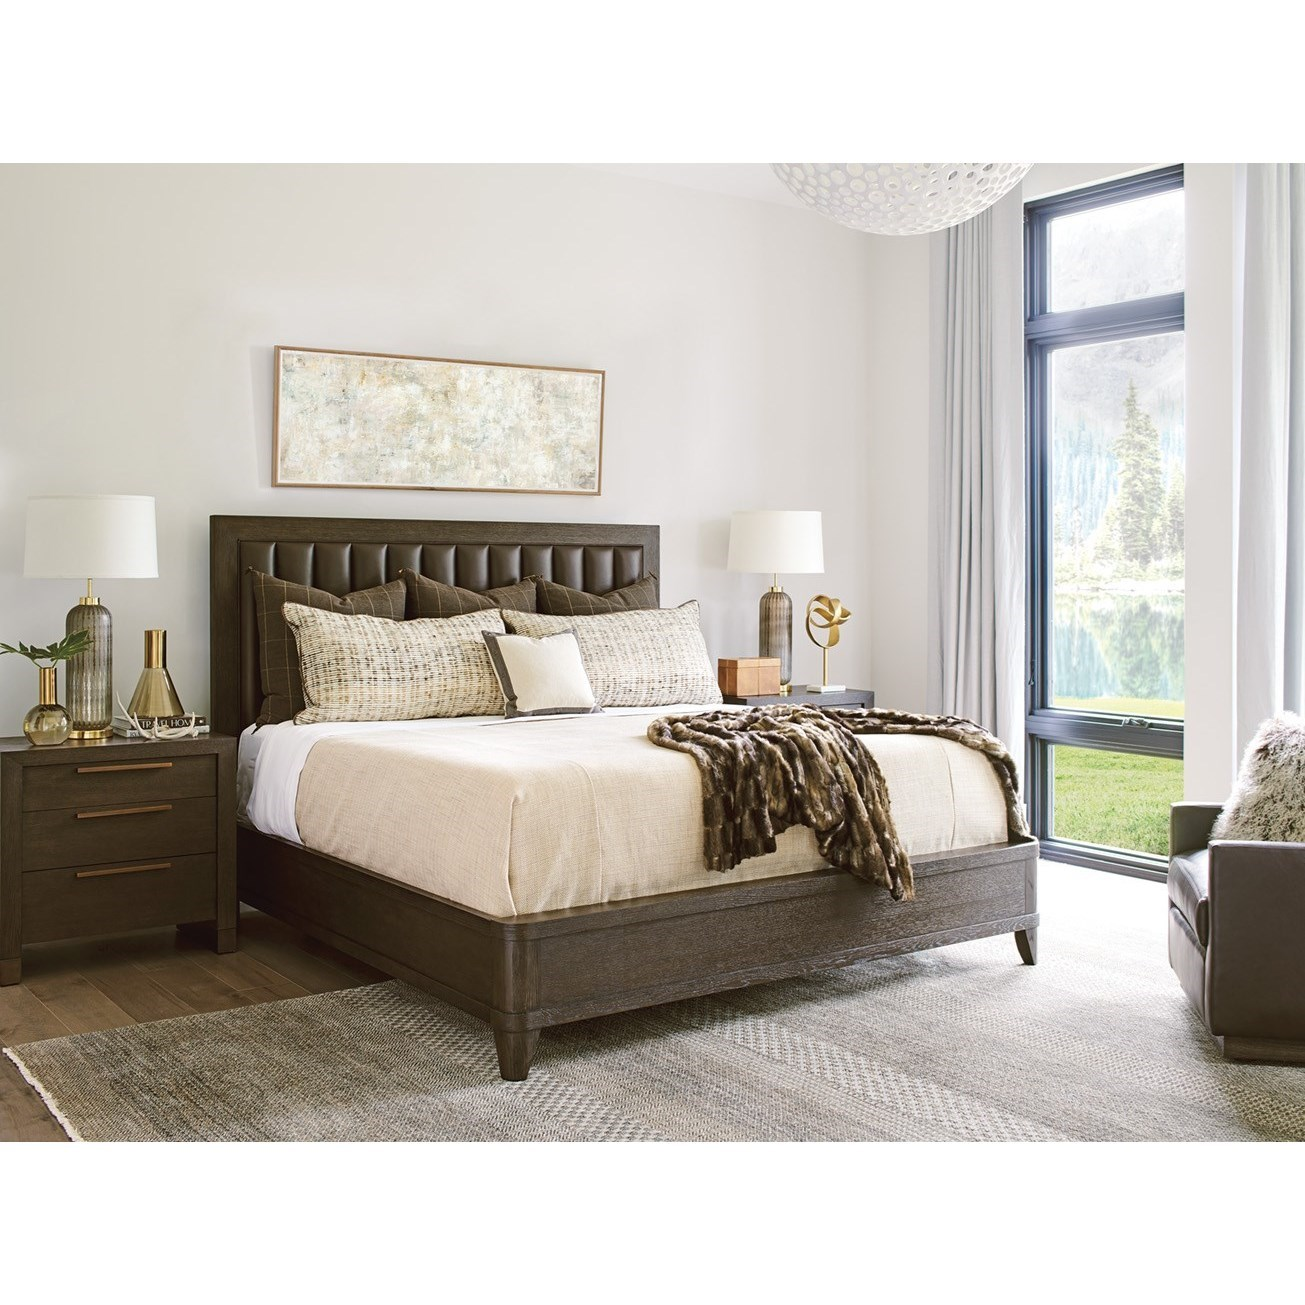 Park City Queen Bedroom Group by Barclay Butera at Baer's Furniture